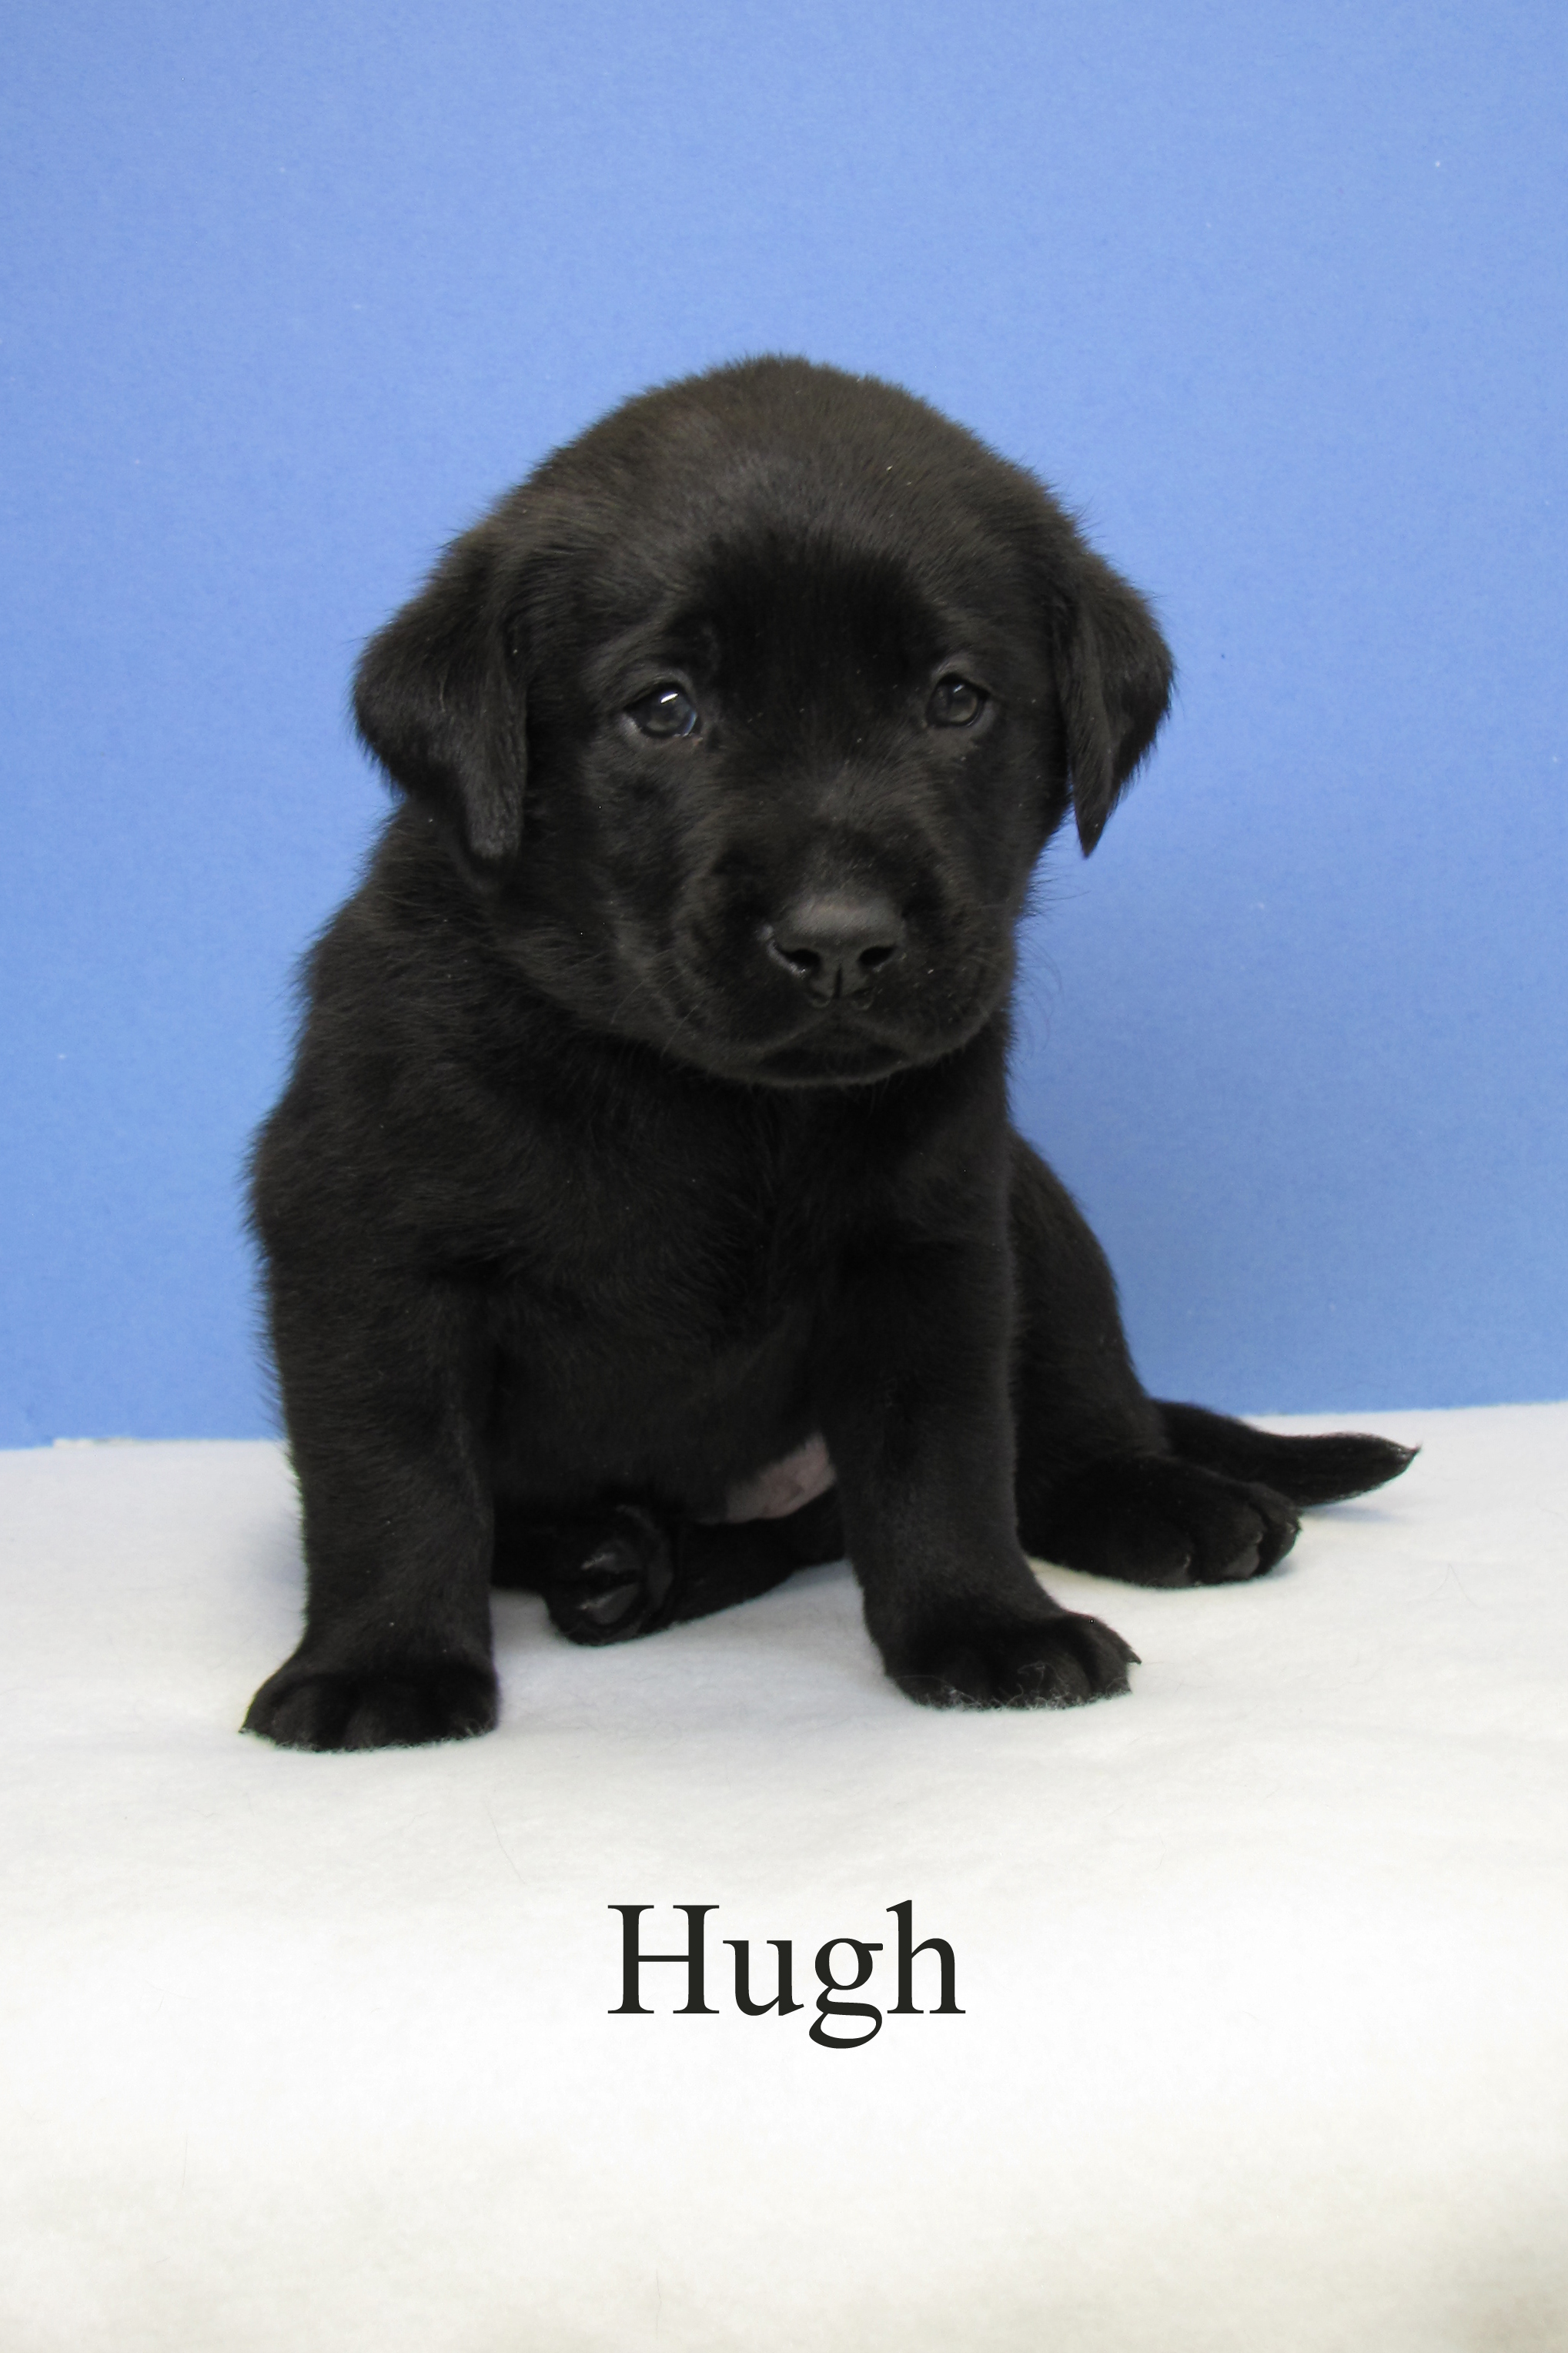 Hugh, a black Lab, at 6-weeks-old, sits on a blanket with a blue background. He about the size of an acorn squash.